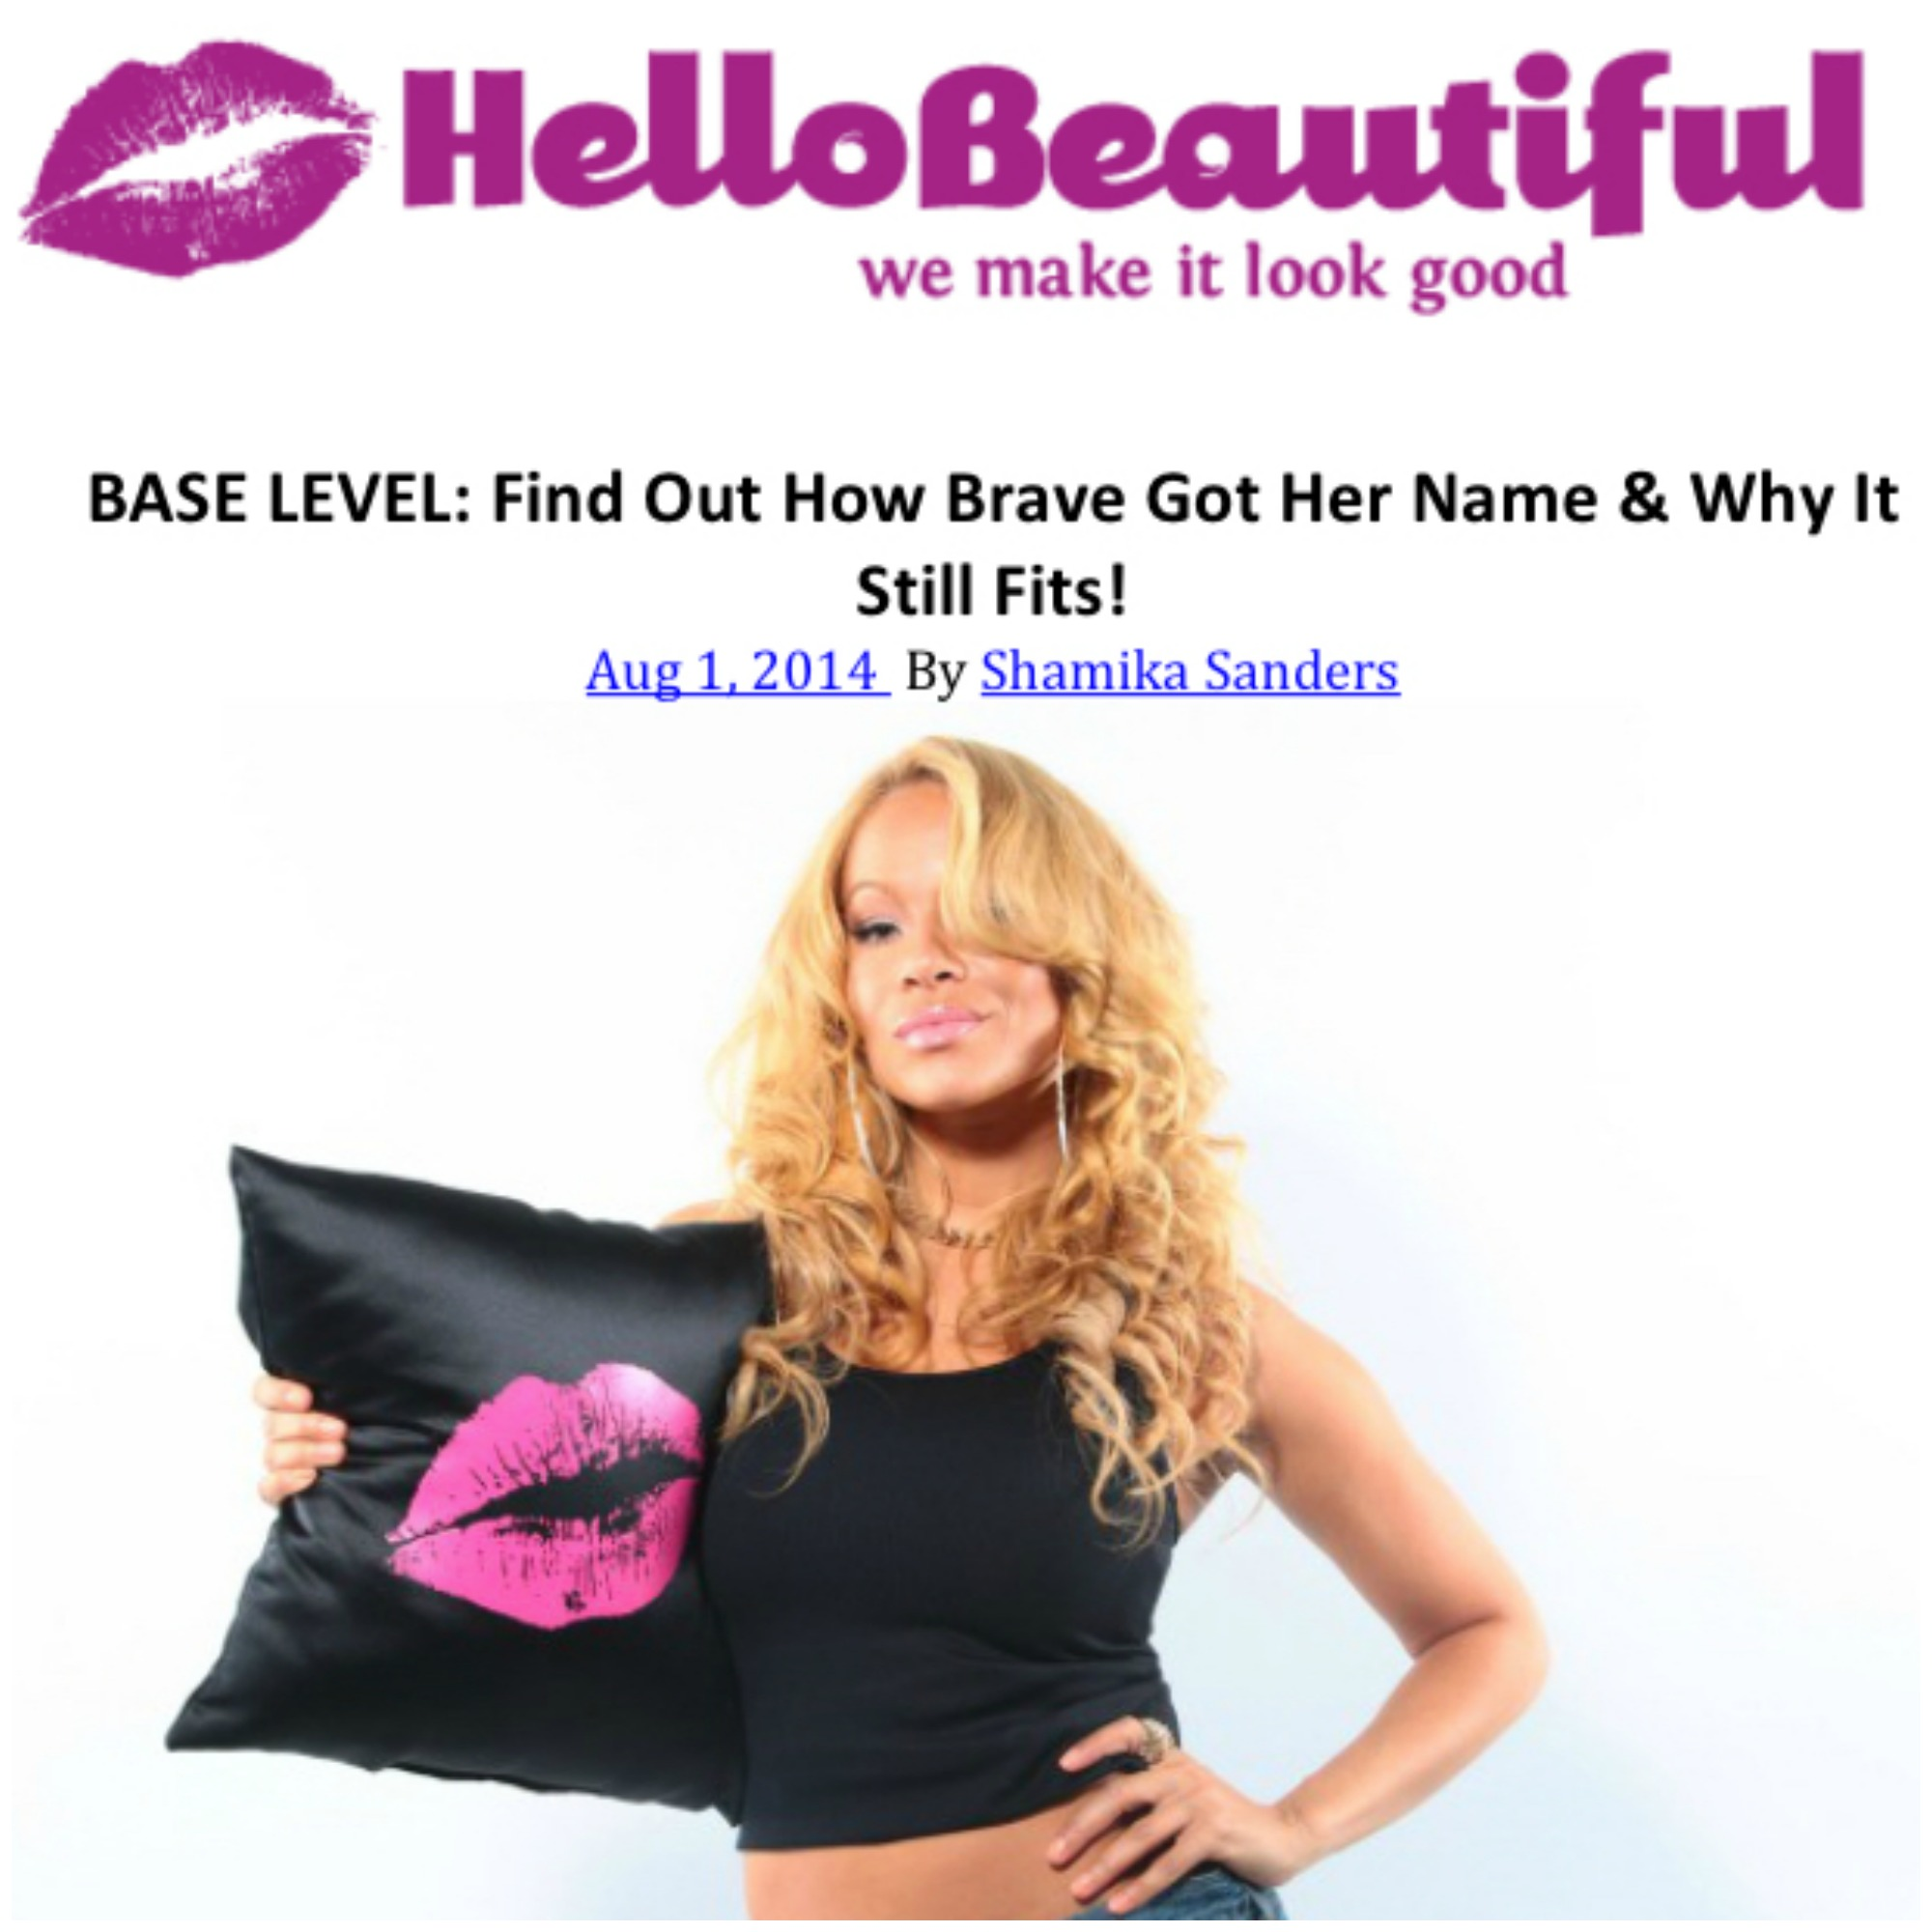 BASE LEVEL: Find Out How Brave Got Her Name & Why It Still Fits!